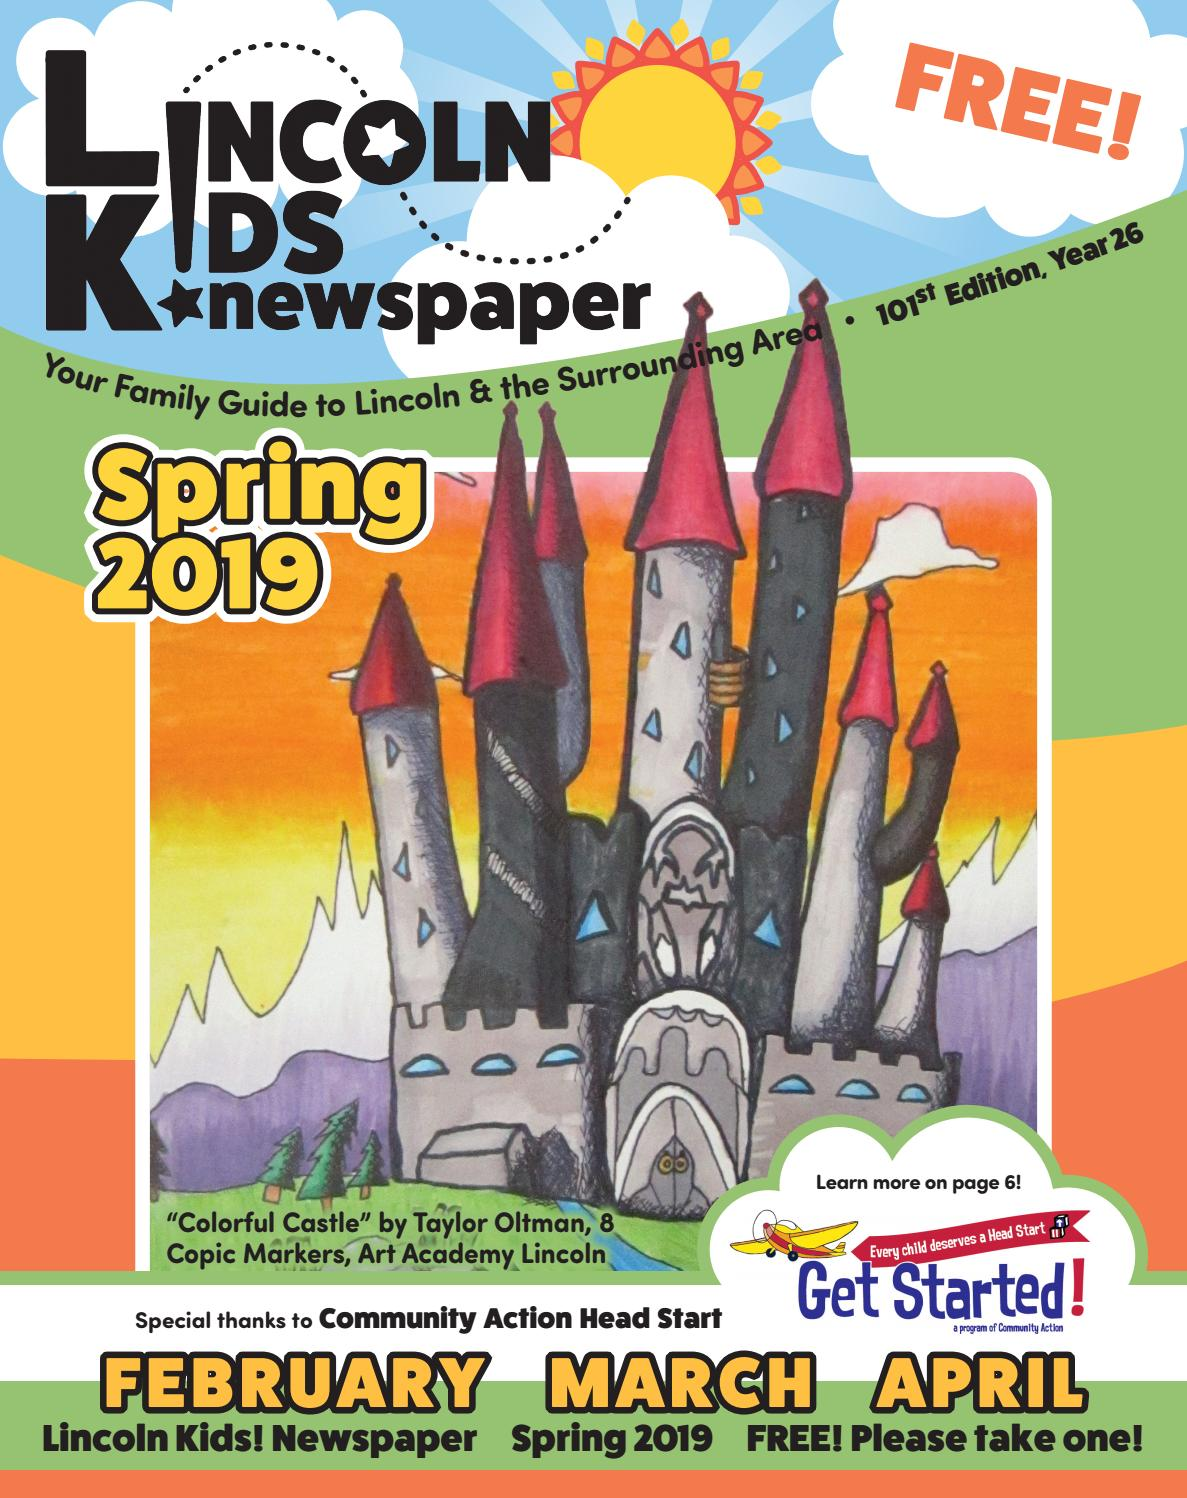 fall flower arrangements wth hay rasng kds and.htm lincoln kids  newspaper spring edition 2019 by lincoln kids  issuu  lincoln kids  newspaper spring edition